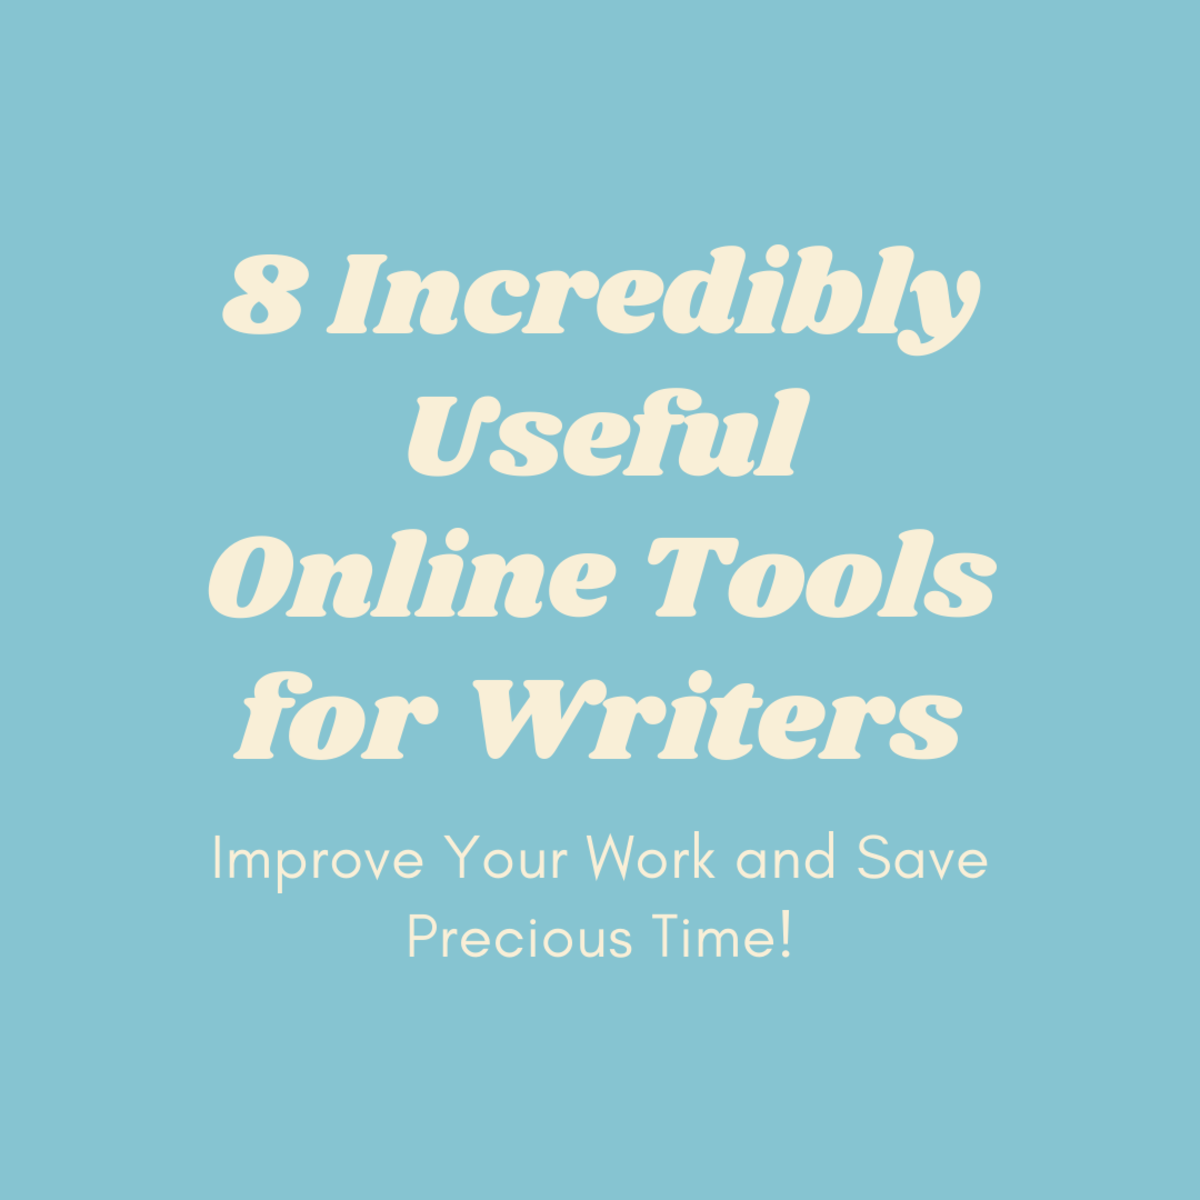 These tools will make writing so much easier!